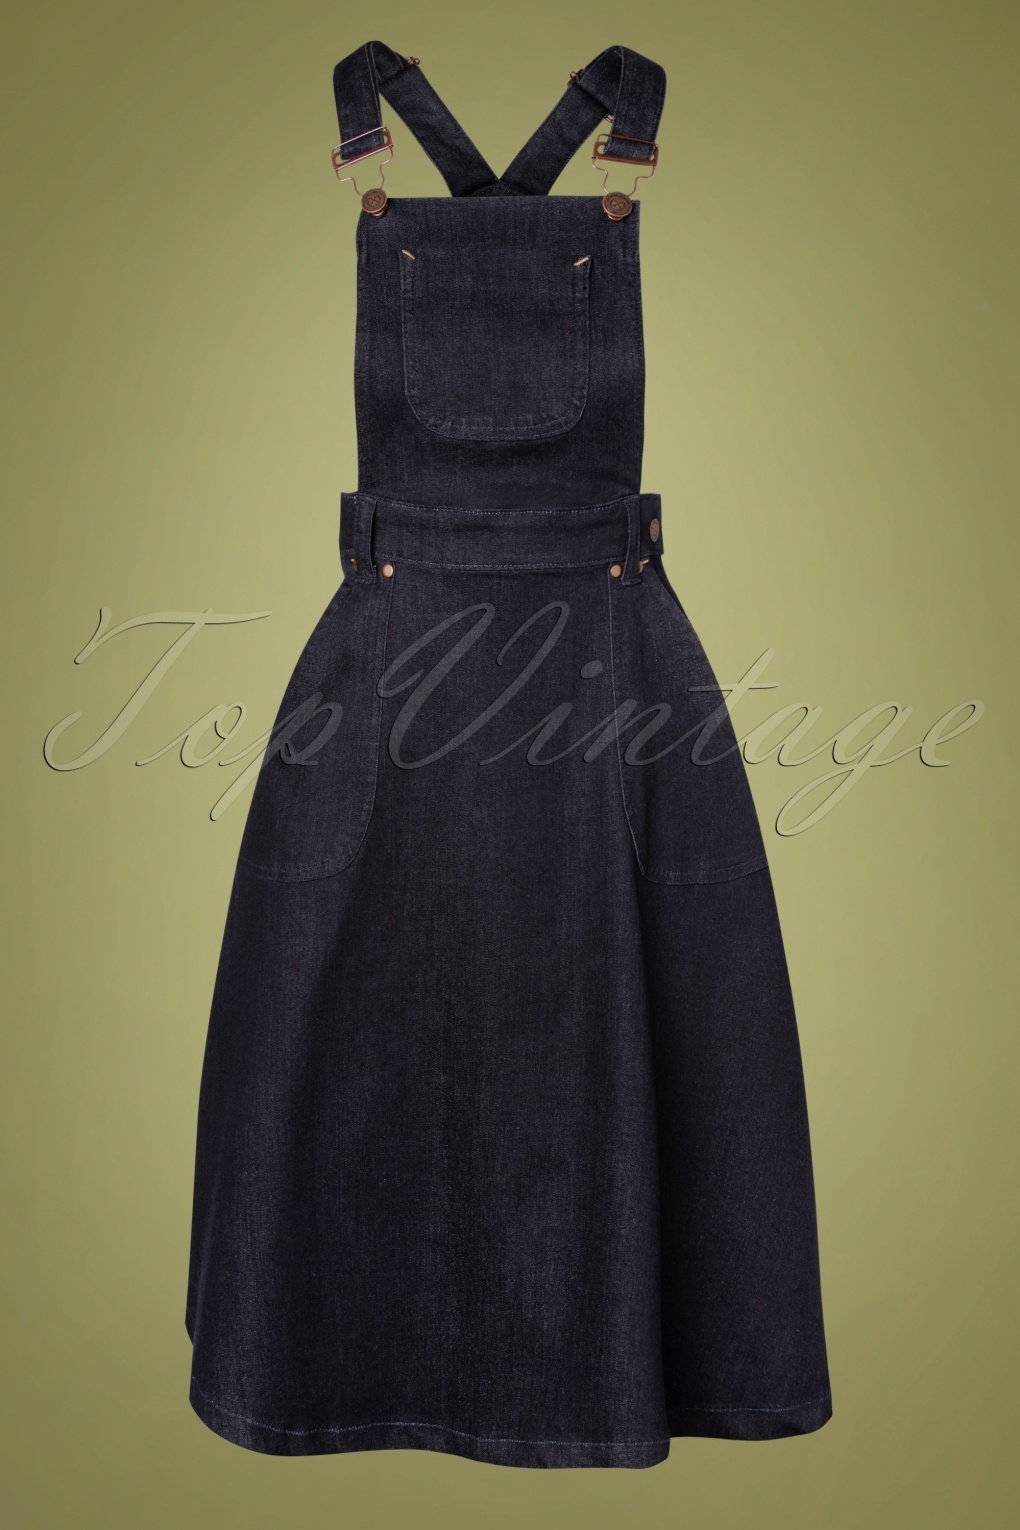 1950s Swing Skirt, Poodle Skirt, Pencil Skirts 50s Workwear Denim Jumper Skirt in Dark Blue £64.17 AT vintagedancer.com